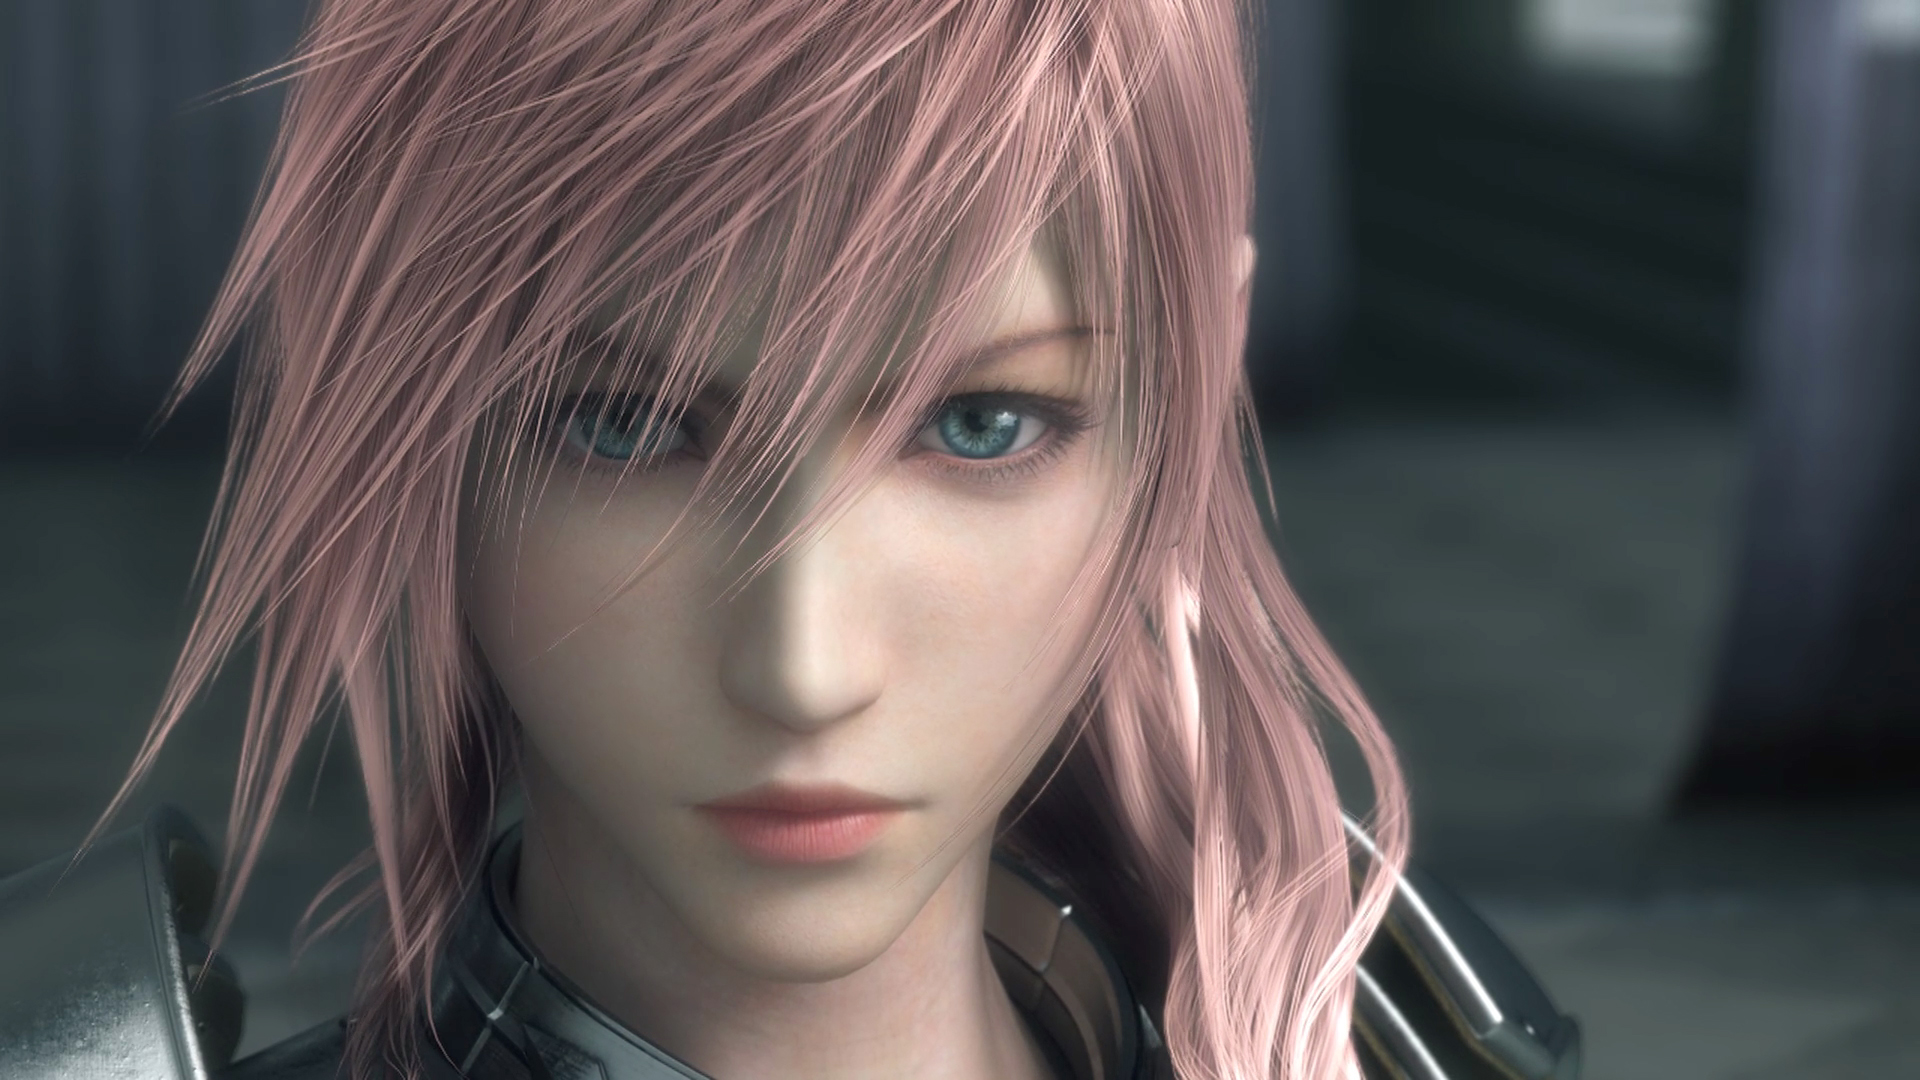 final fantasy hd A1